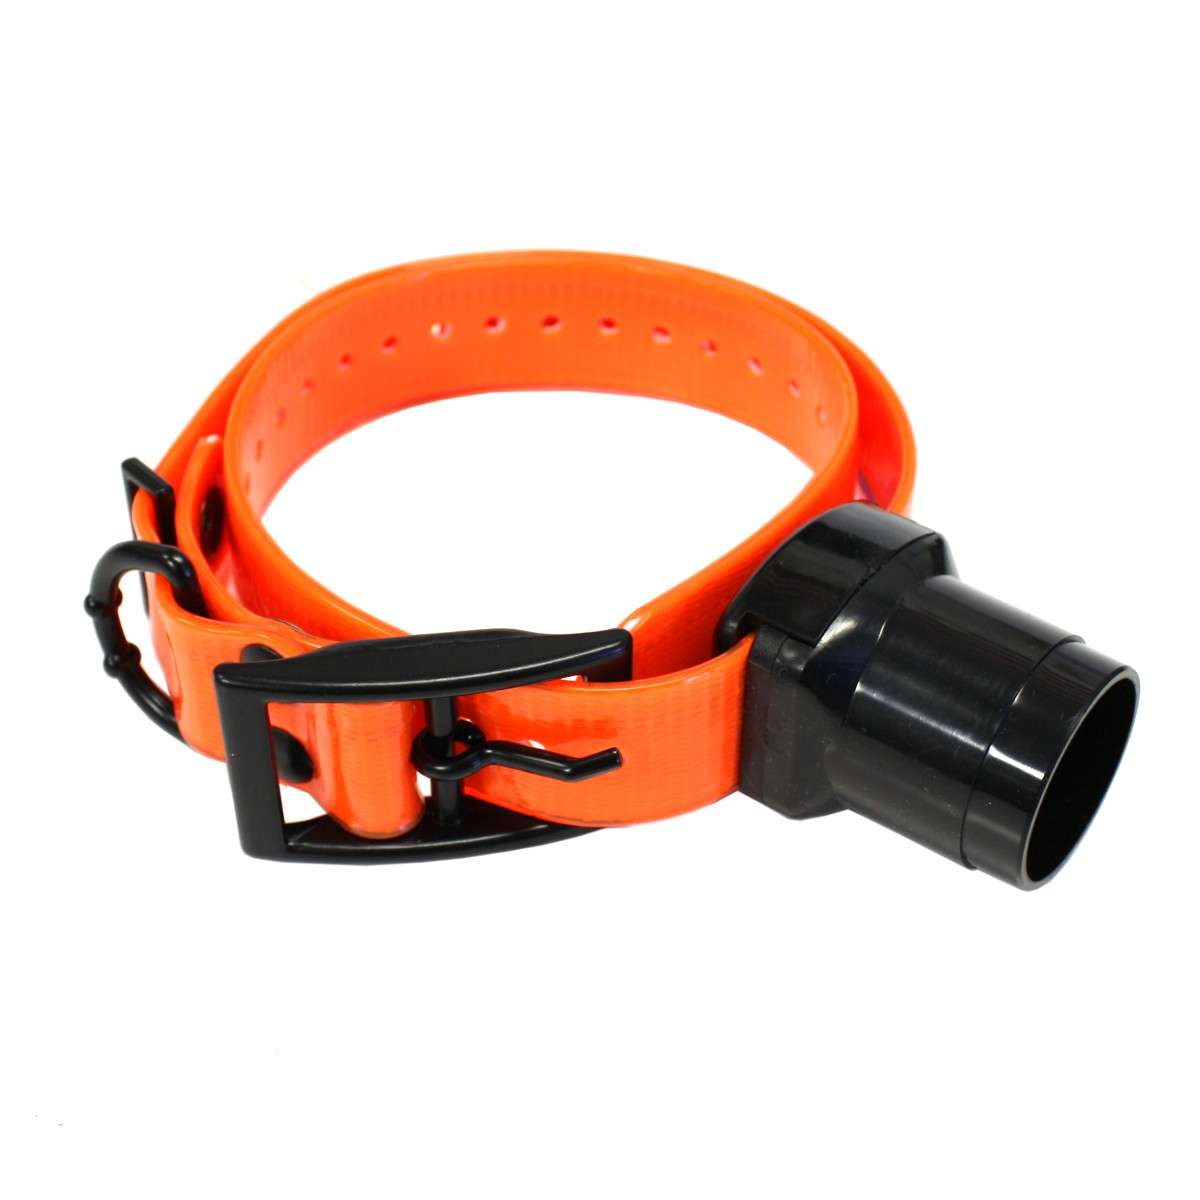 BEEPER COLLAR BELT